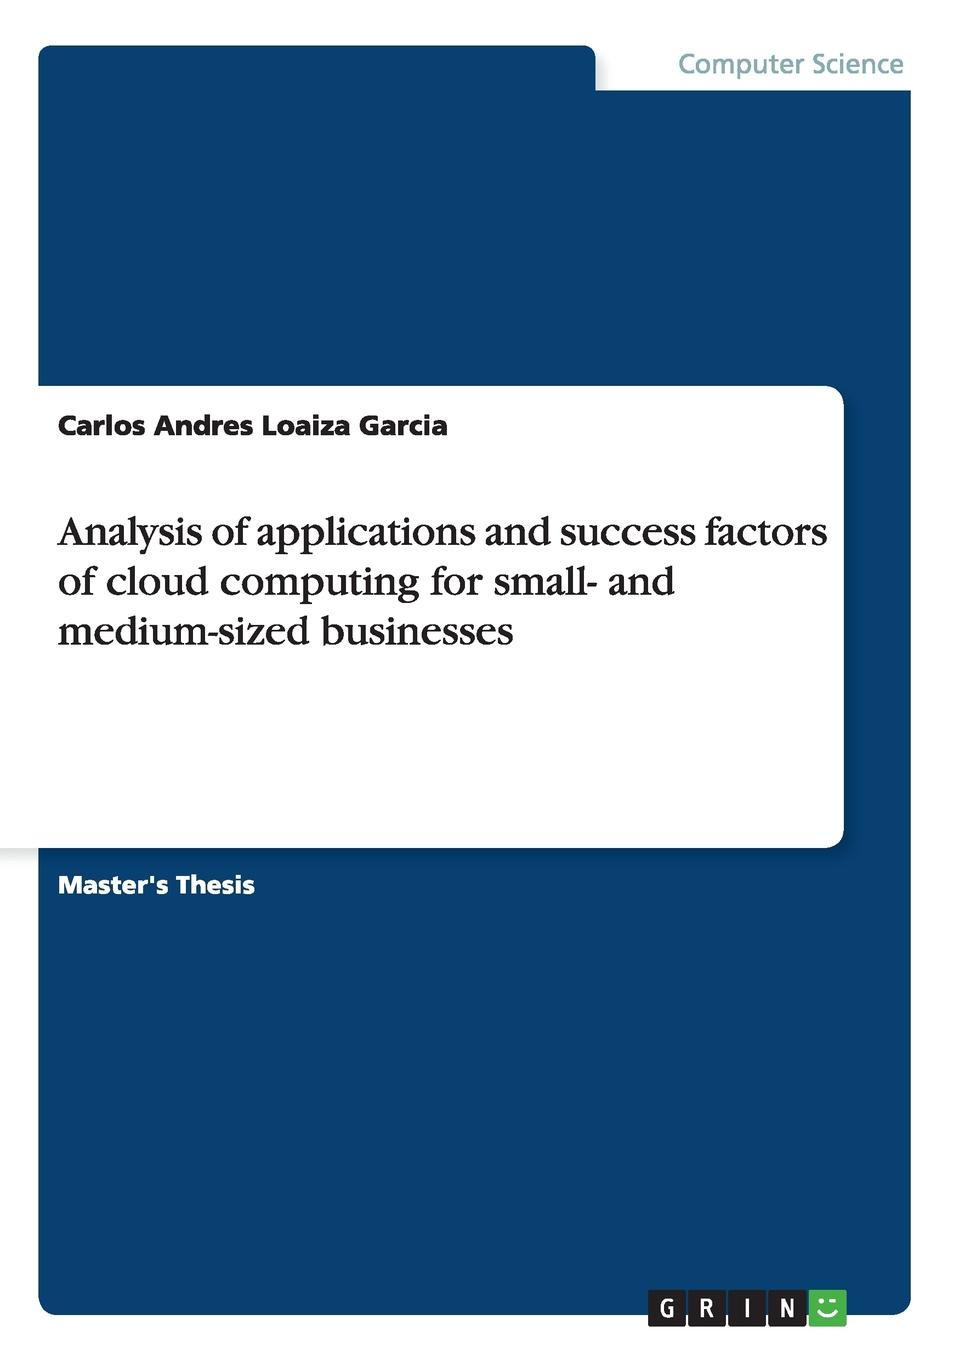 Carlos Andres Loaiza Garcia Analysis of applications and success factors of cloud computing for small- and medium-sized businesses activity based costing making it work for small and mid sized companies